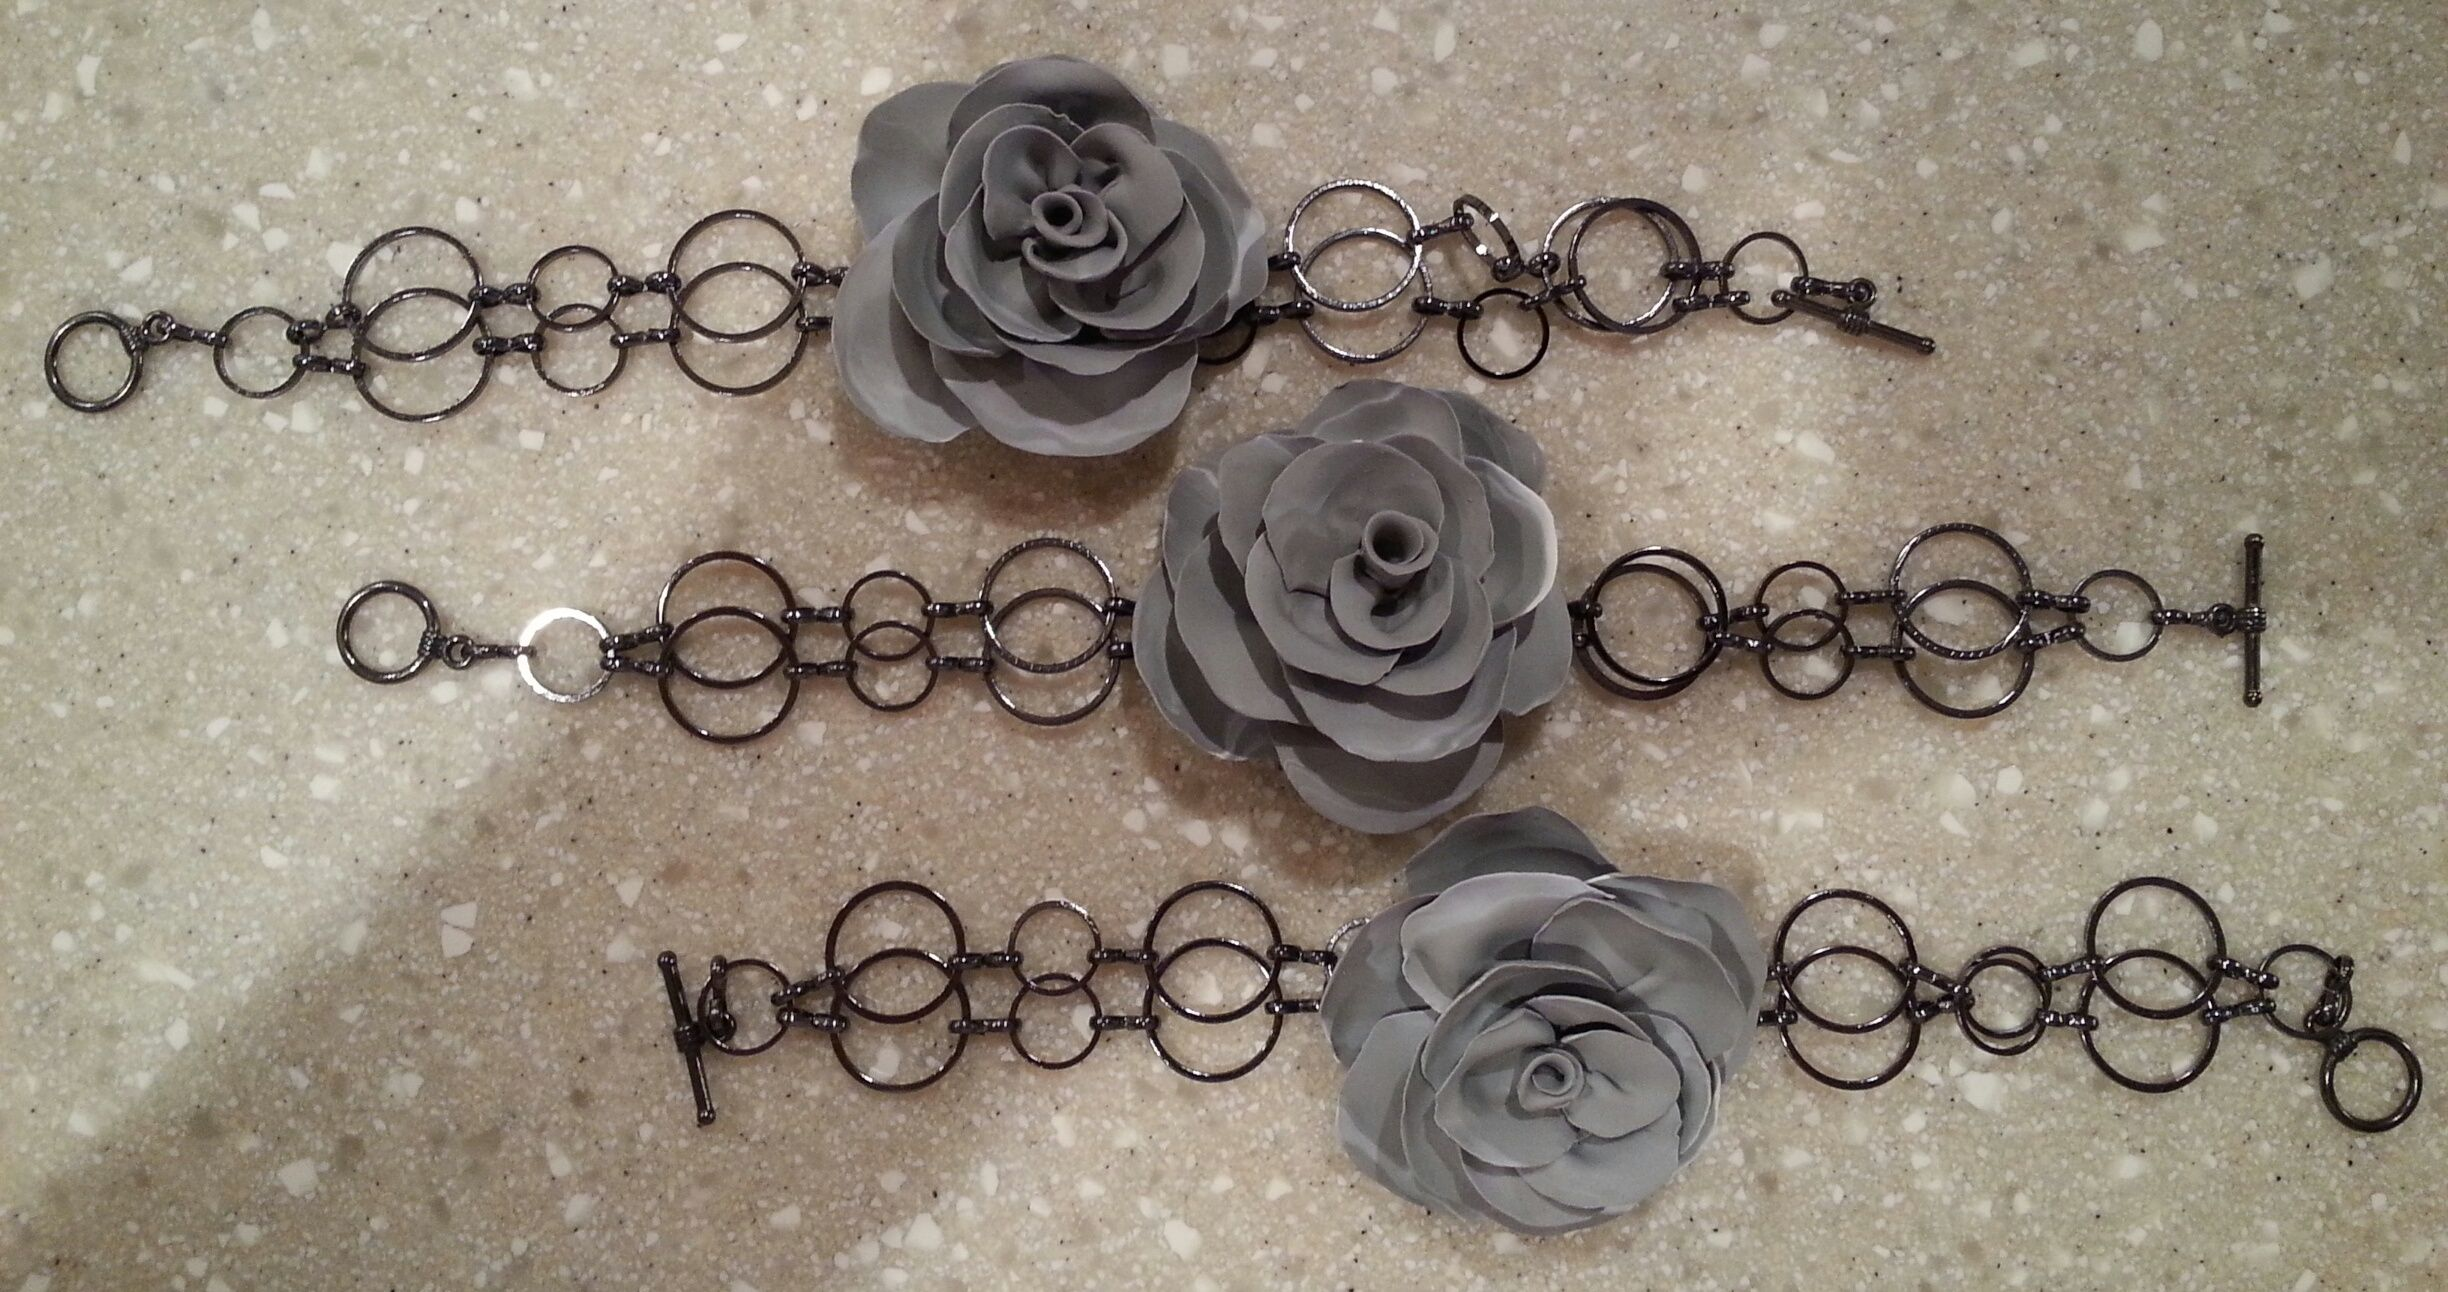 Handmade polymer clay rose bracelets! By Diane Louise SOLD!